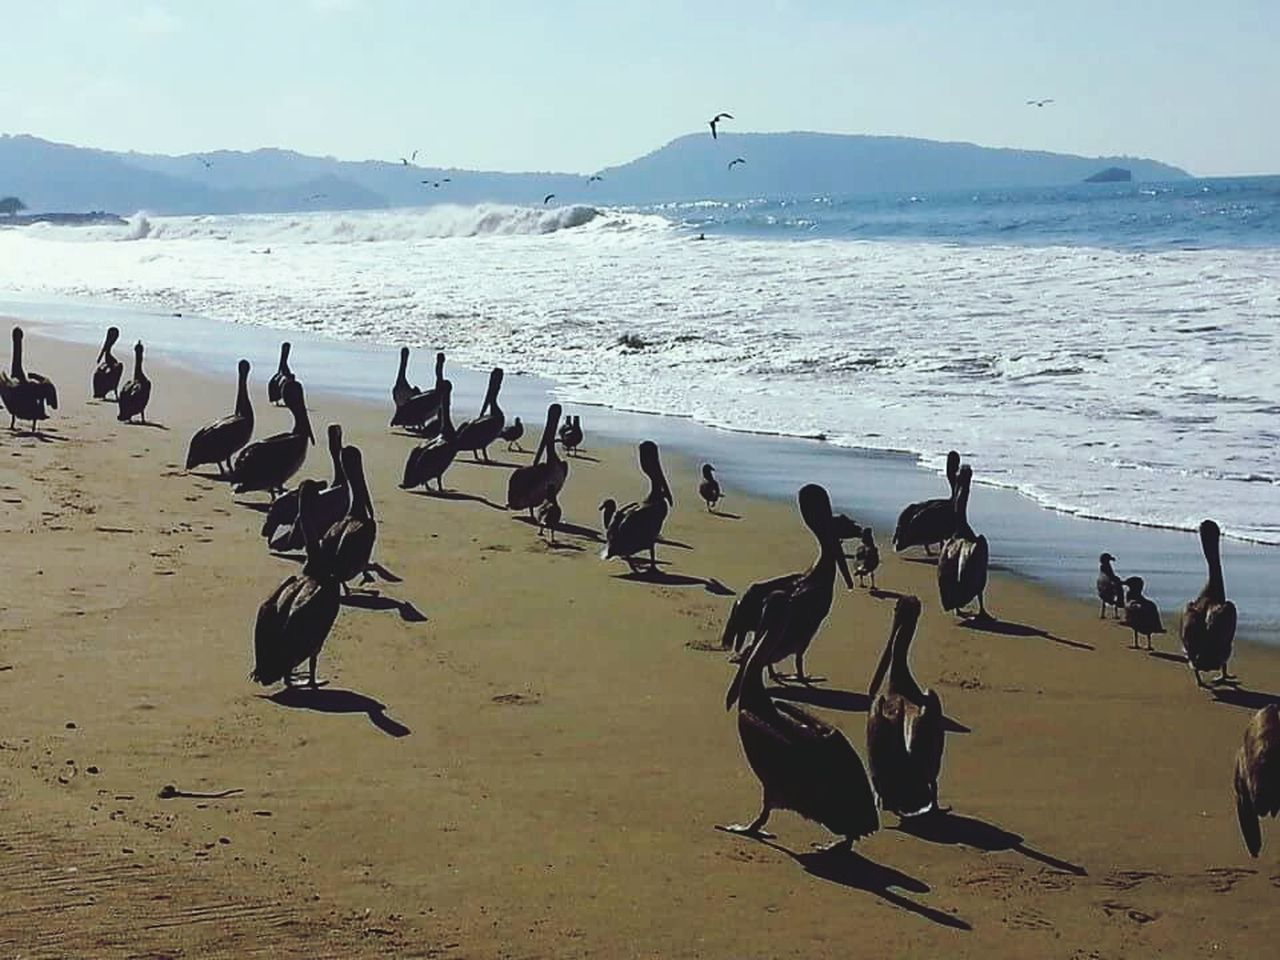 large group of animals, beach, water, nature, animal themes, beauty in nature, sea, bird, animals in the wild, sand, scenics, sunlight, day, flock of birds, sky, outdoors, no people, animal wildlife, mountain, horizon over water, swan